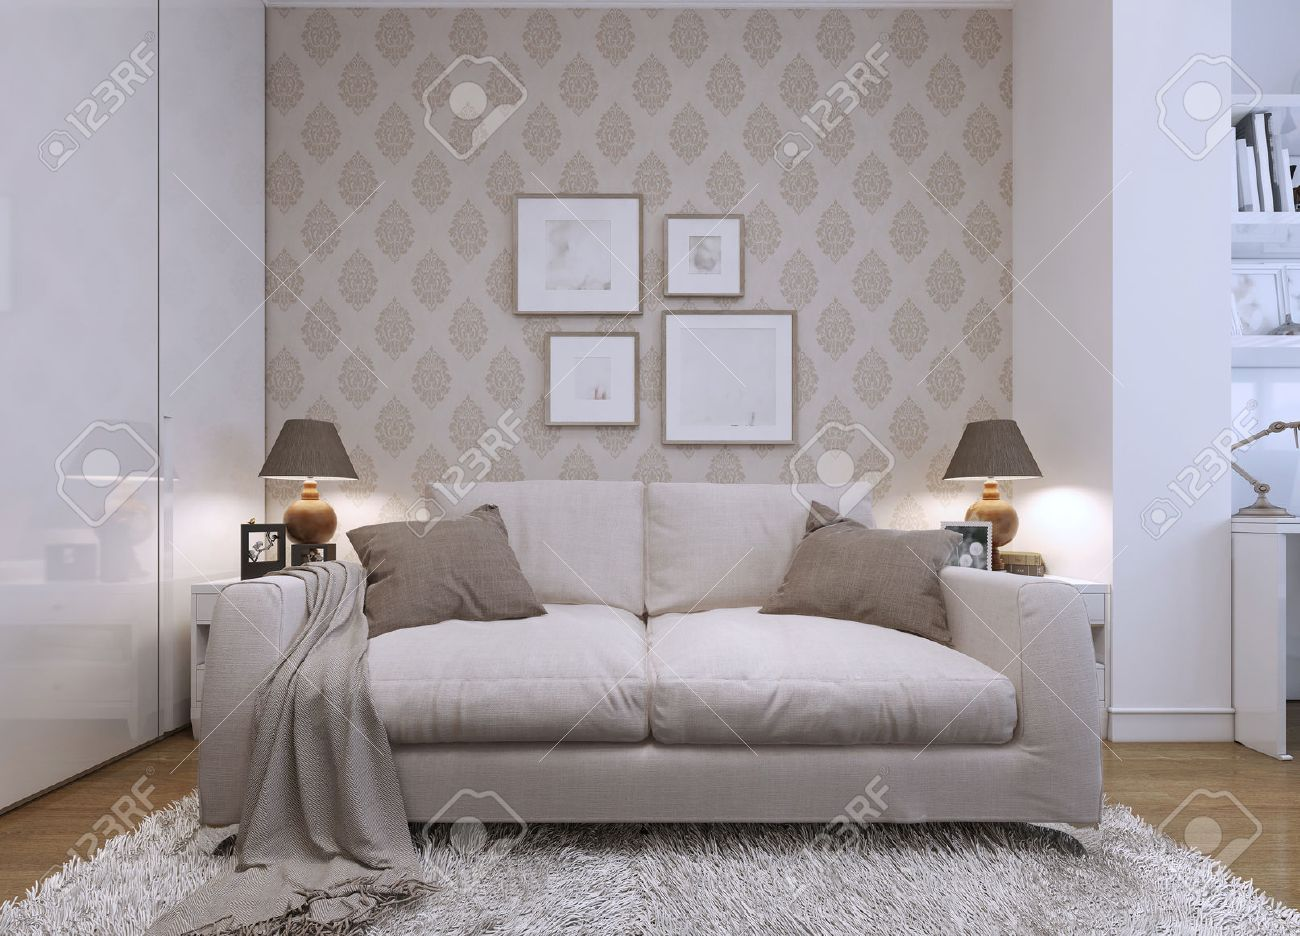 Sofa Beige Beige Sofa In The Living Room In A Modern Style Wallpaper On